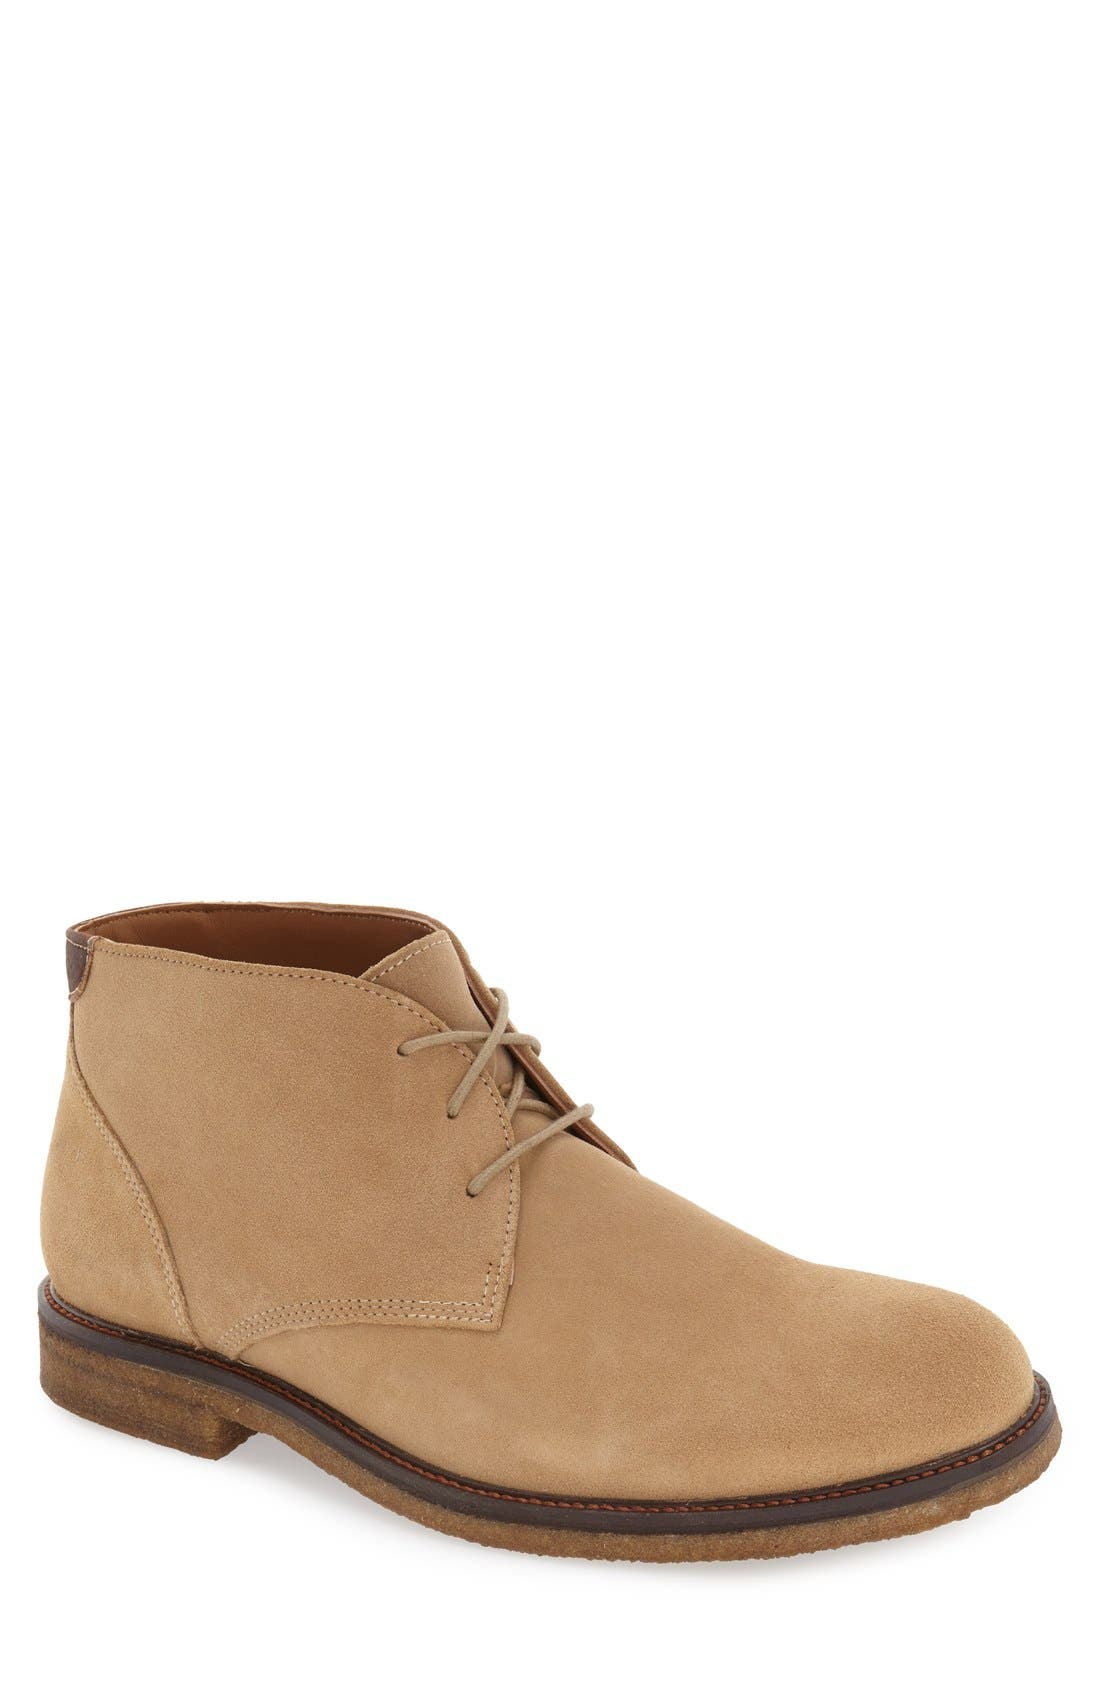 'Copeland' Suede Chukka Boot,                         Main,                         color, Taupe